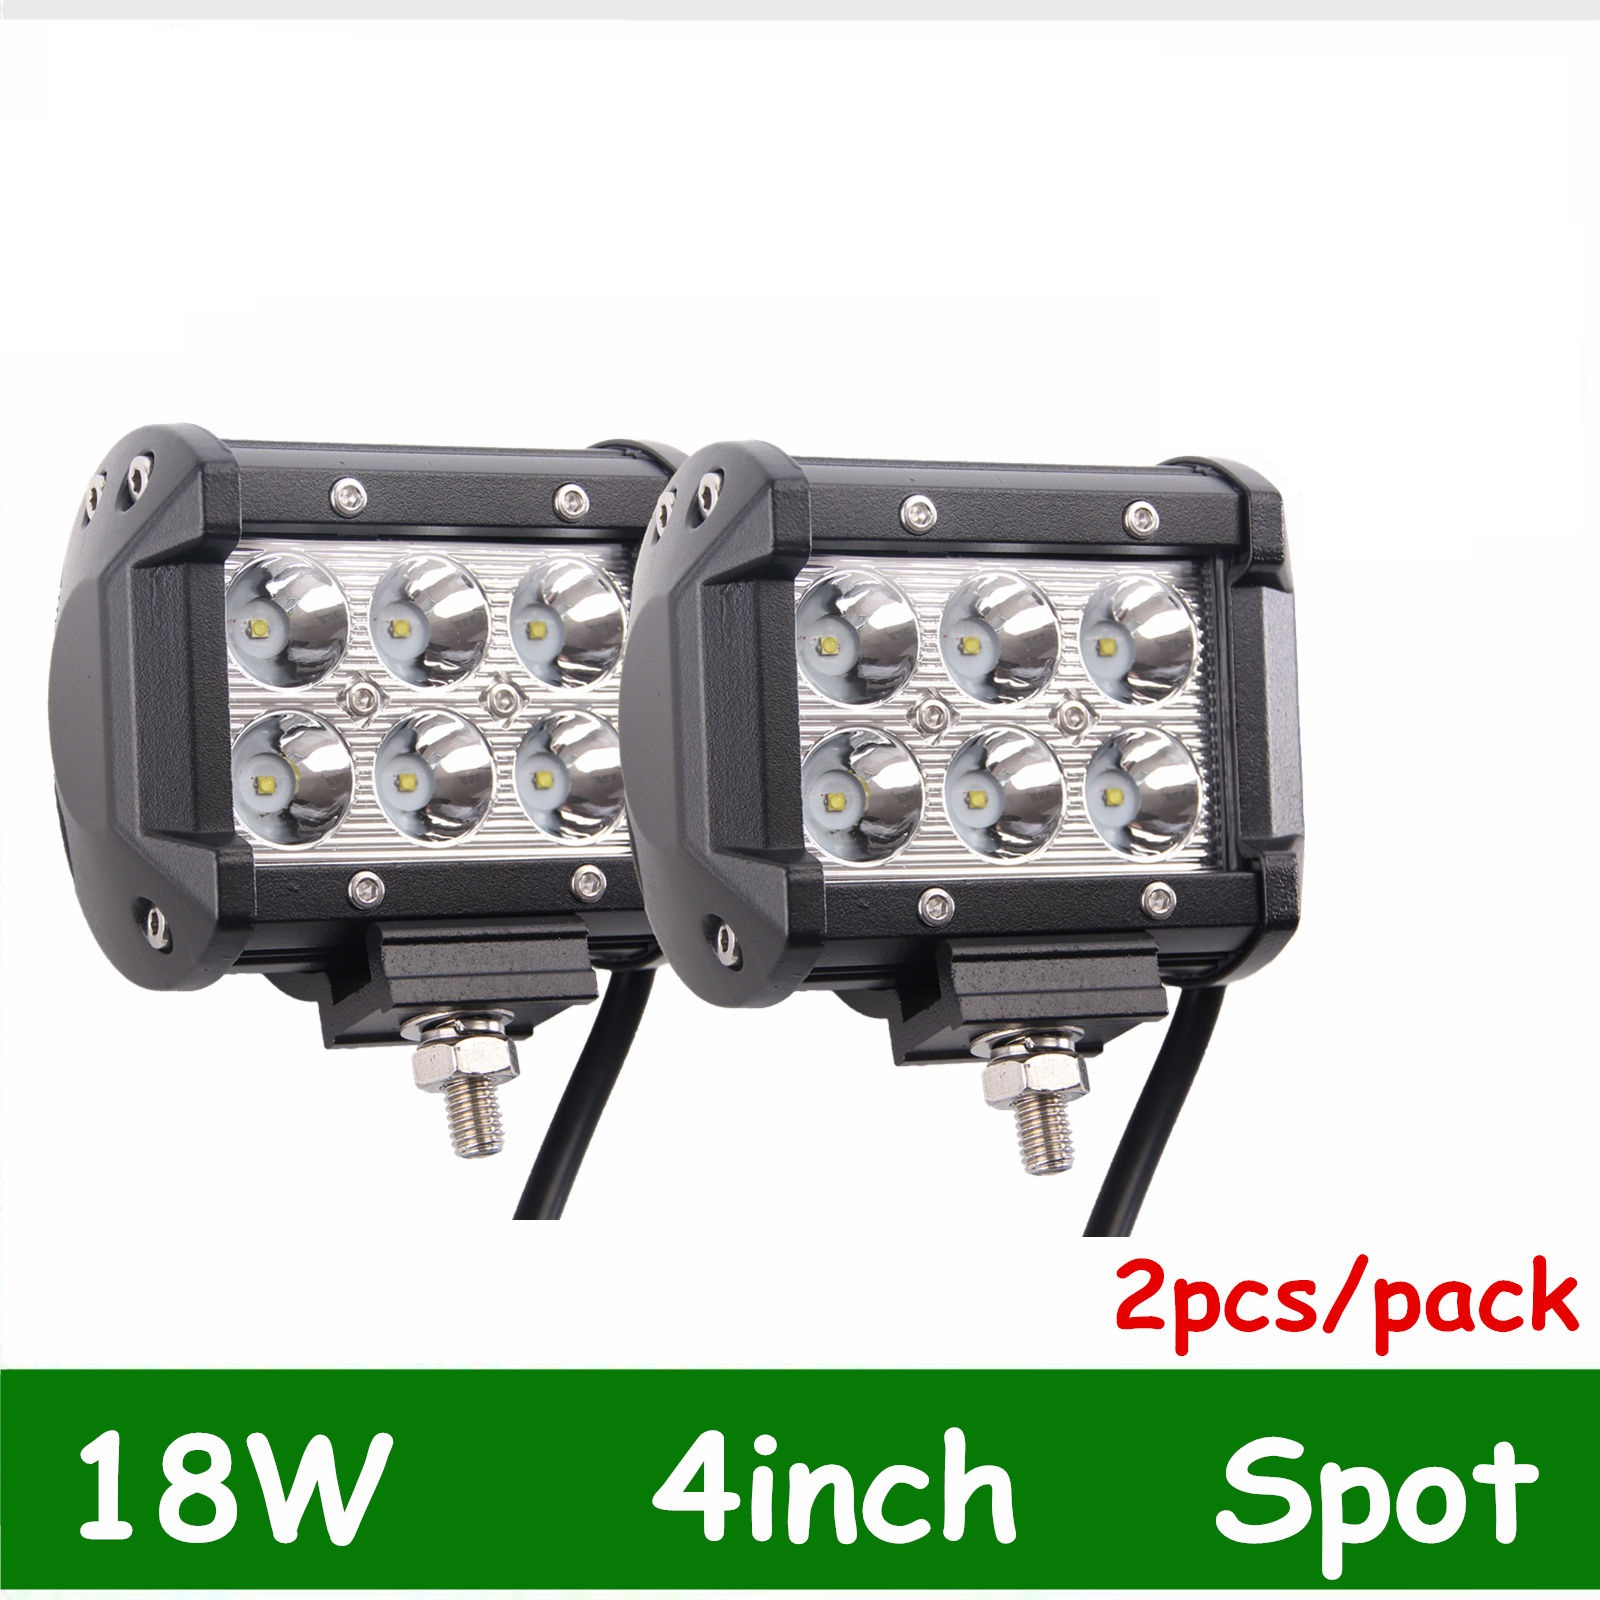 Set of 2 Marine Spreader light LED Deck//Mast light for boat 18W 12v-30v DC